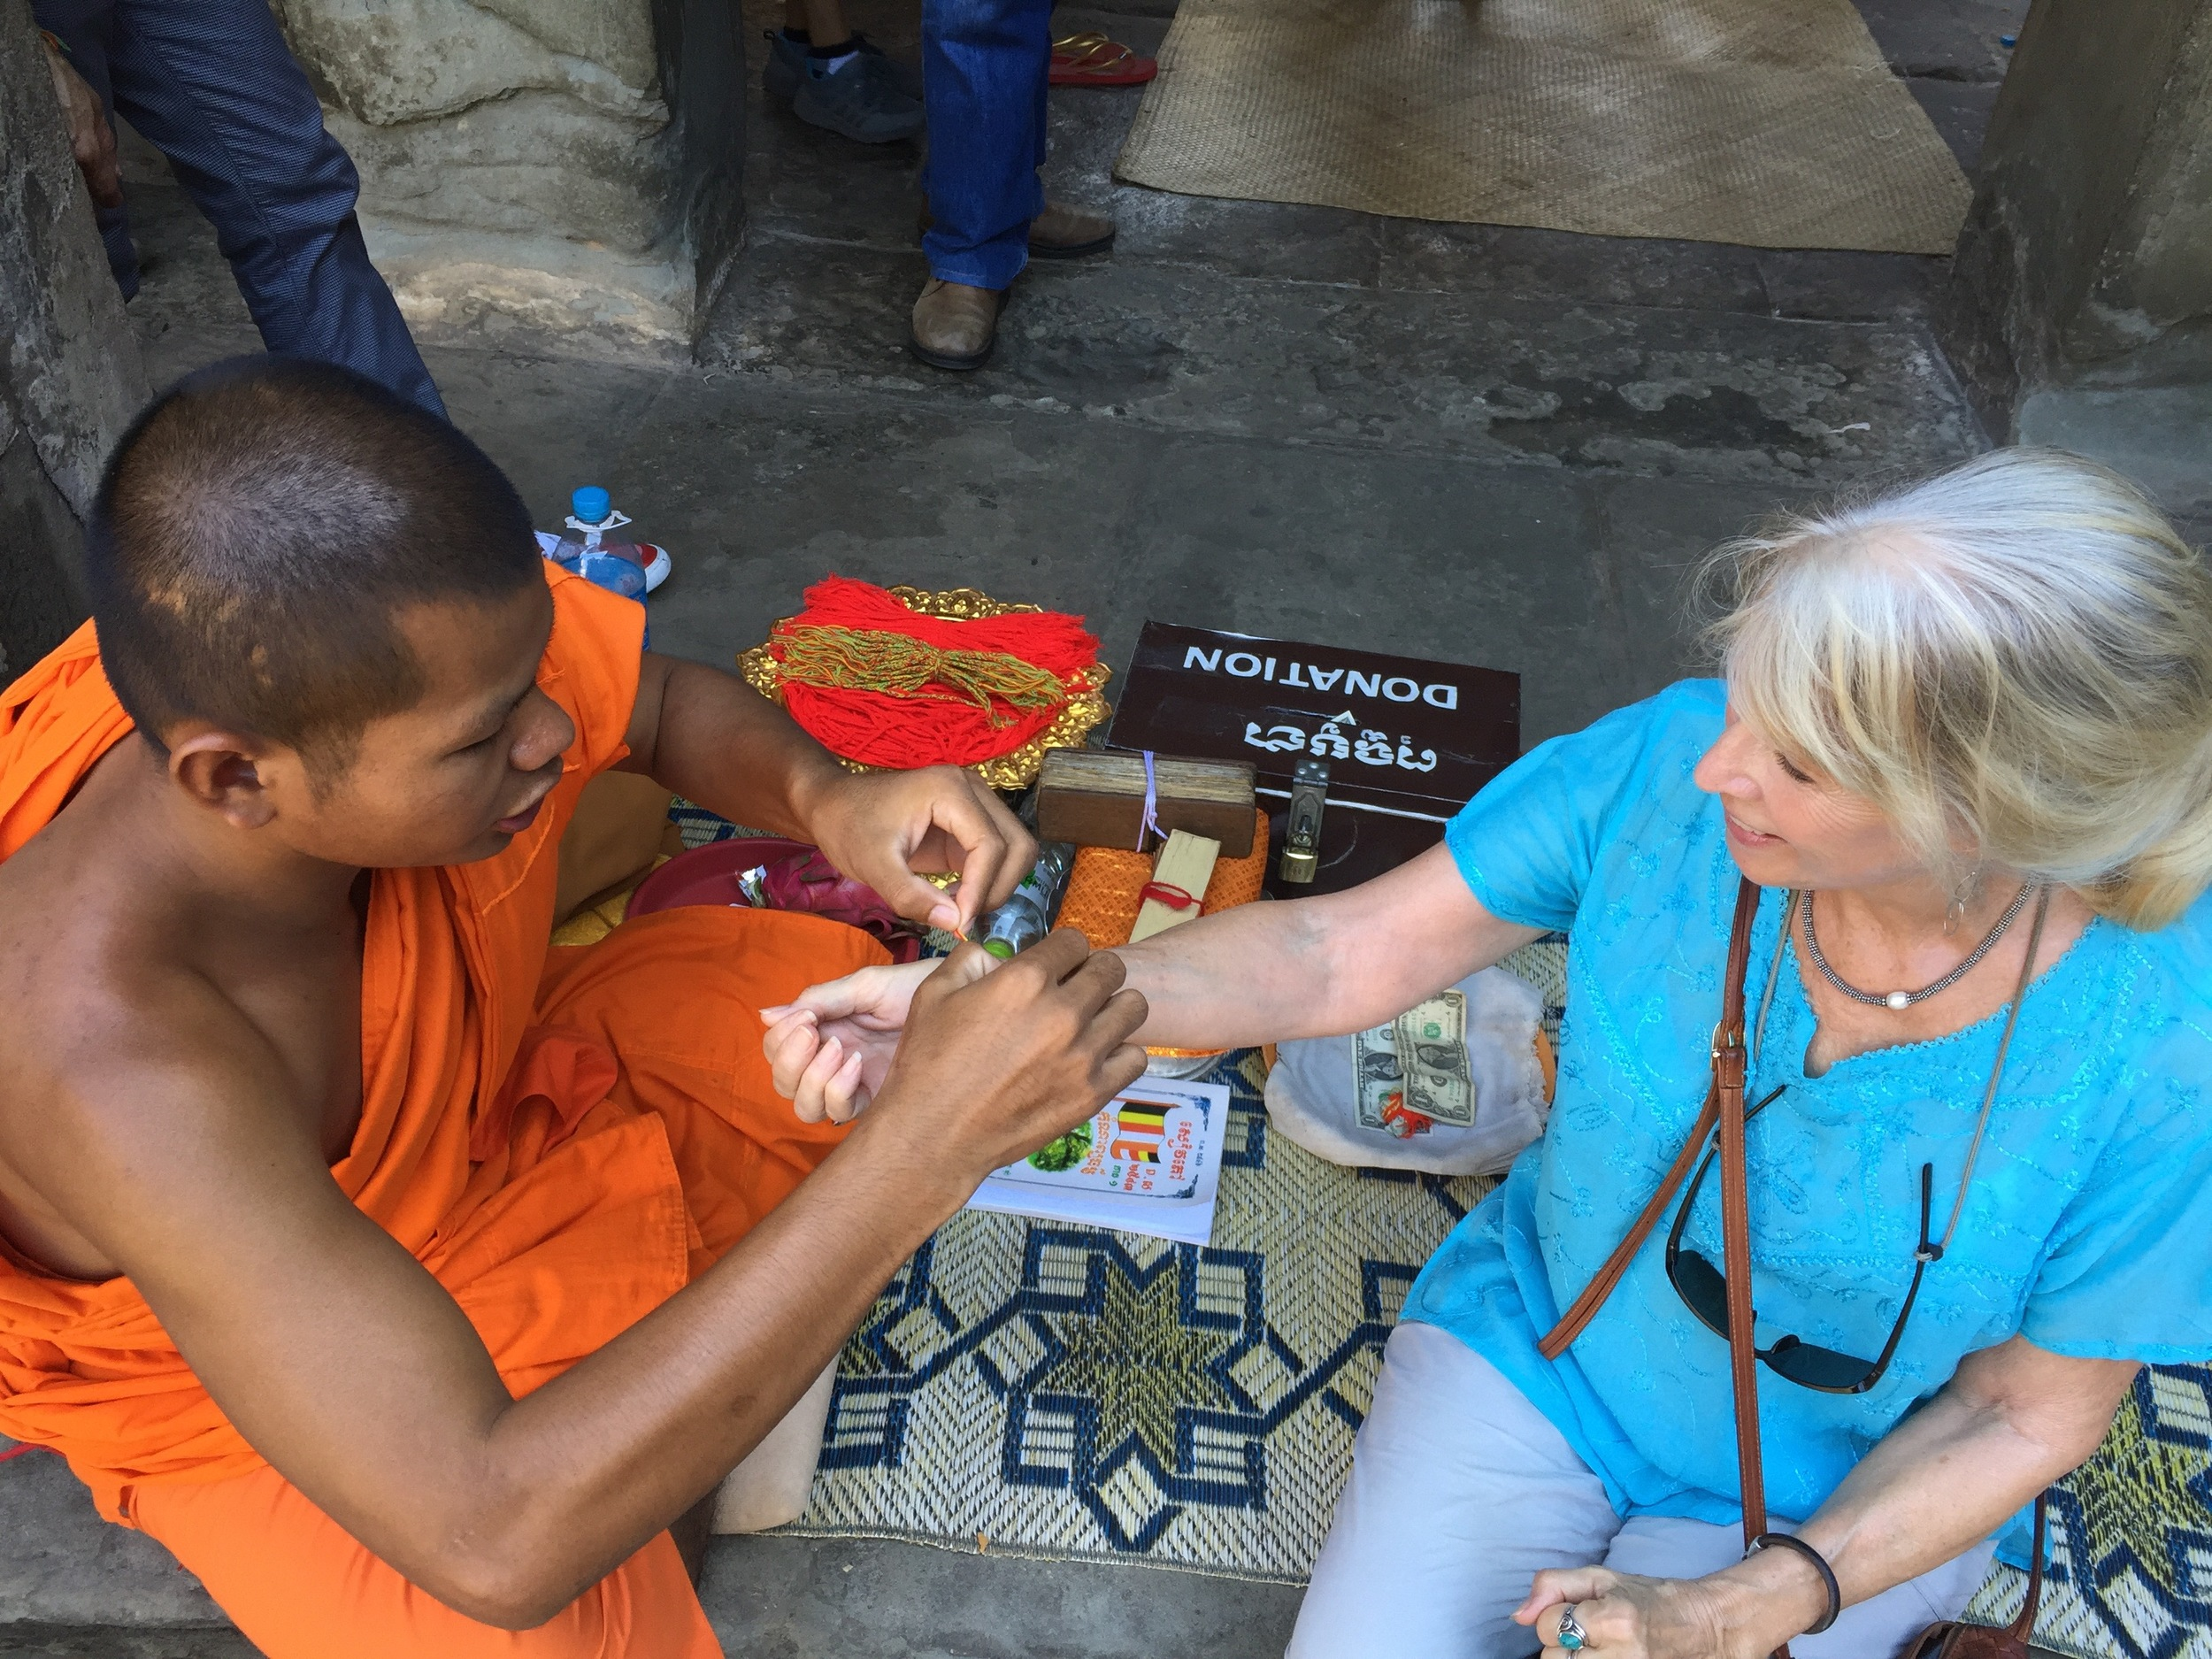 Receiving a blessing and a woven bracelet from a Buddhist monk at Angkor Wat, Cambodia.